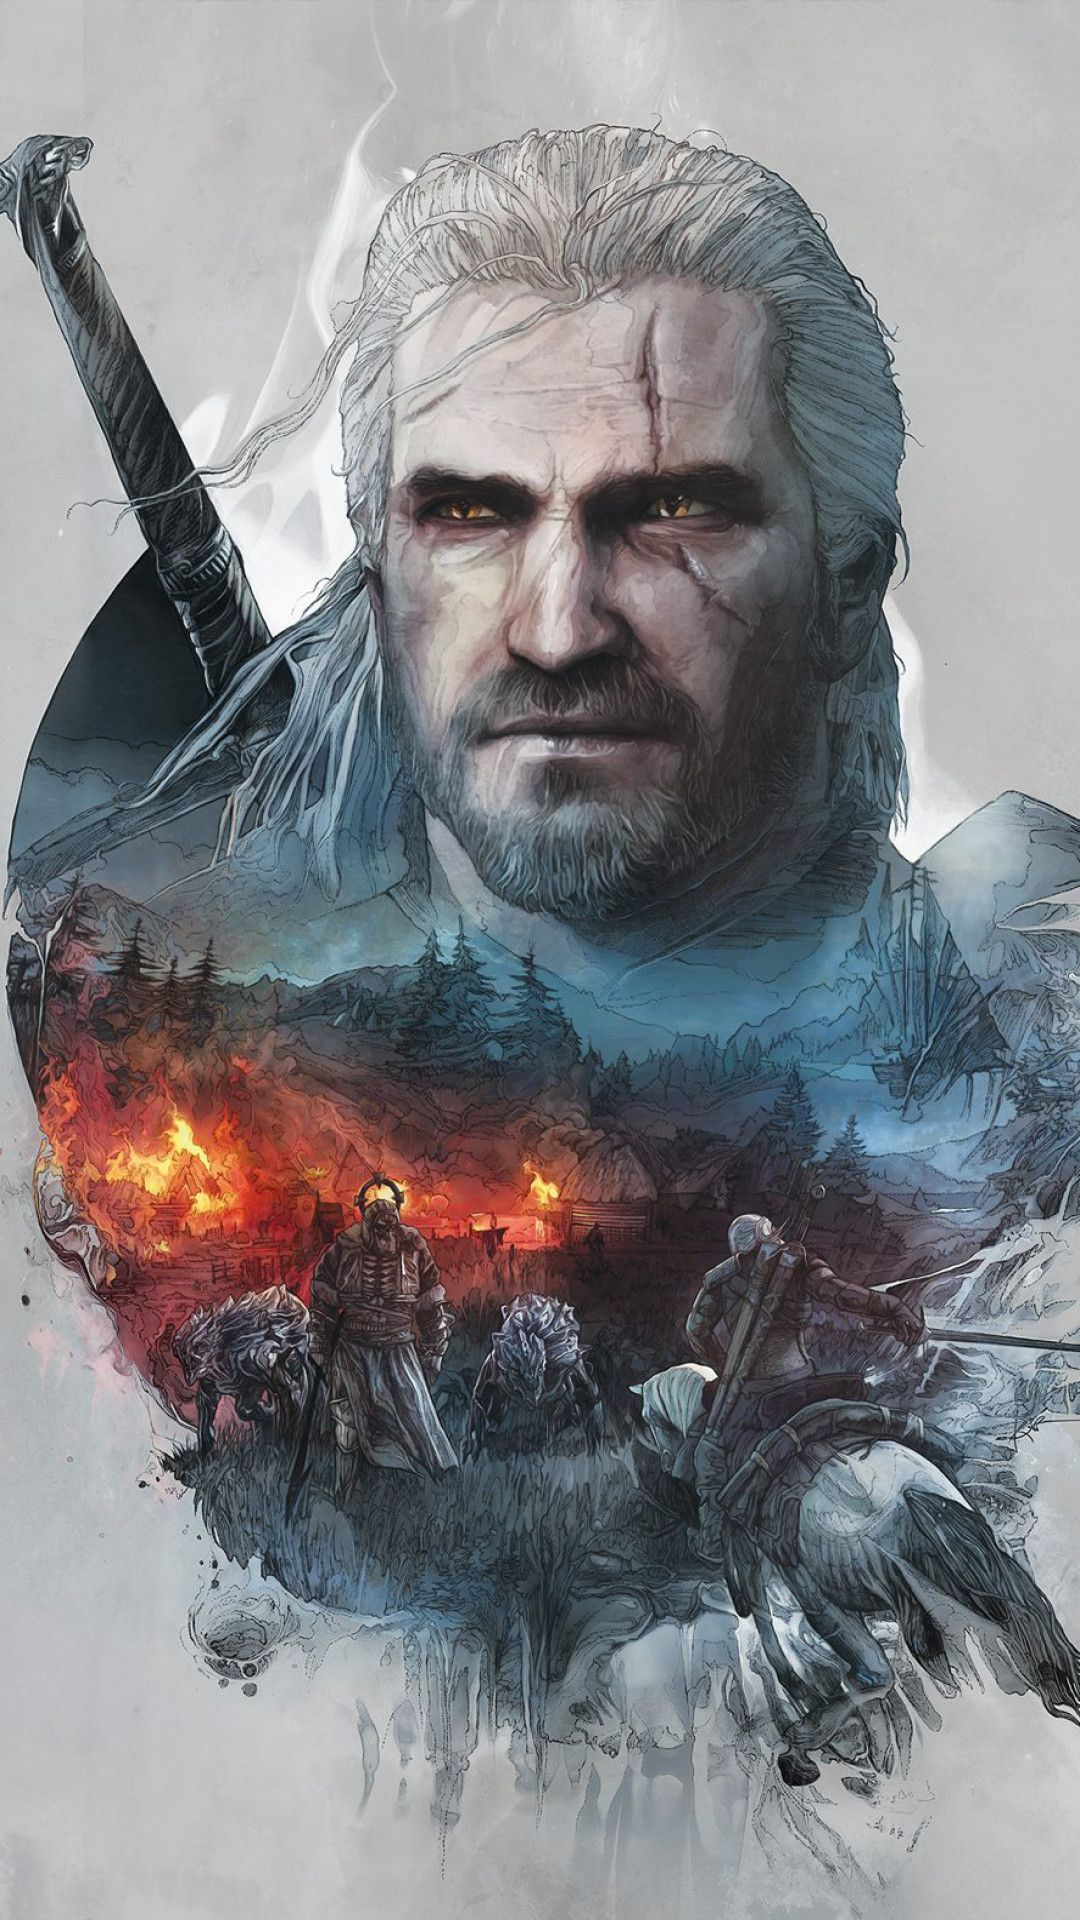 Witcher 3 Iphone Wallpapers Top Free Witcher 3 Iphone